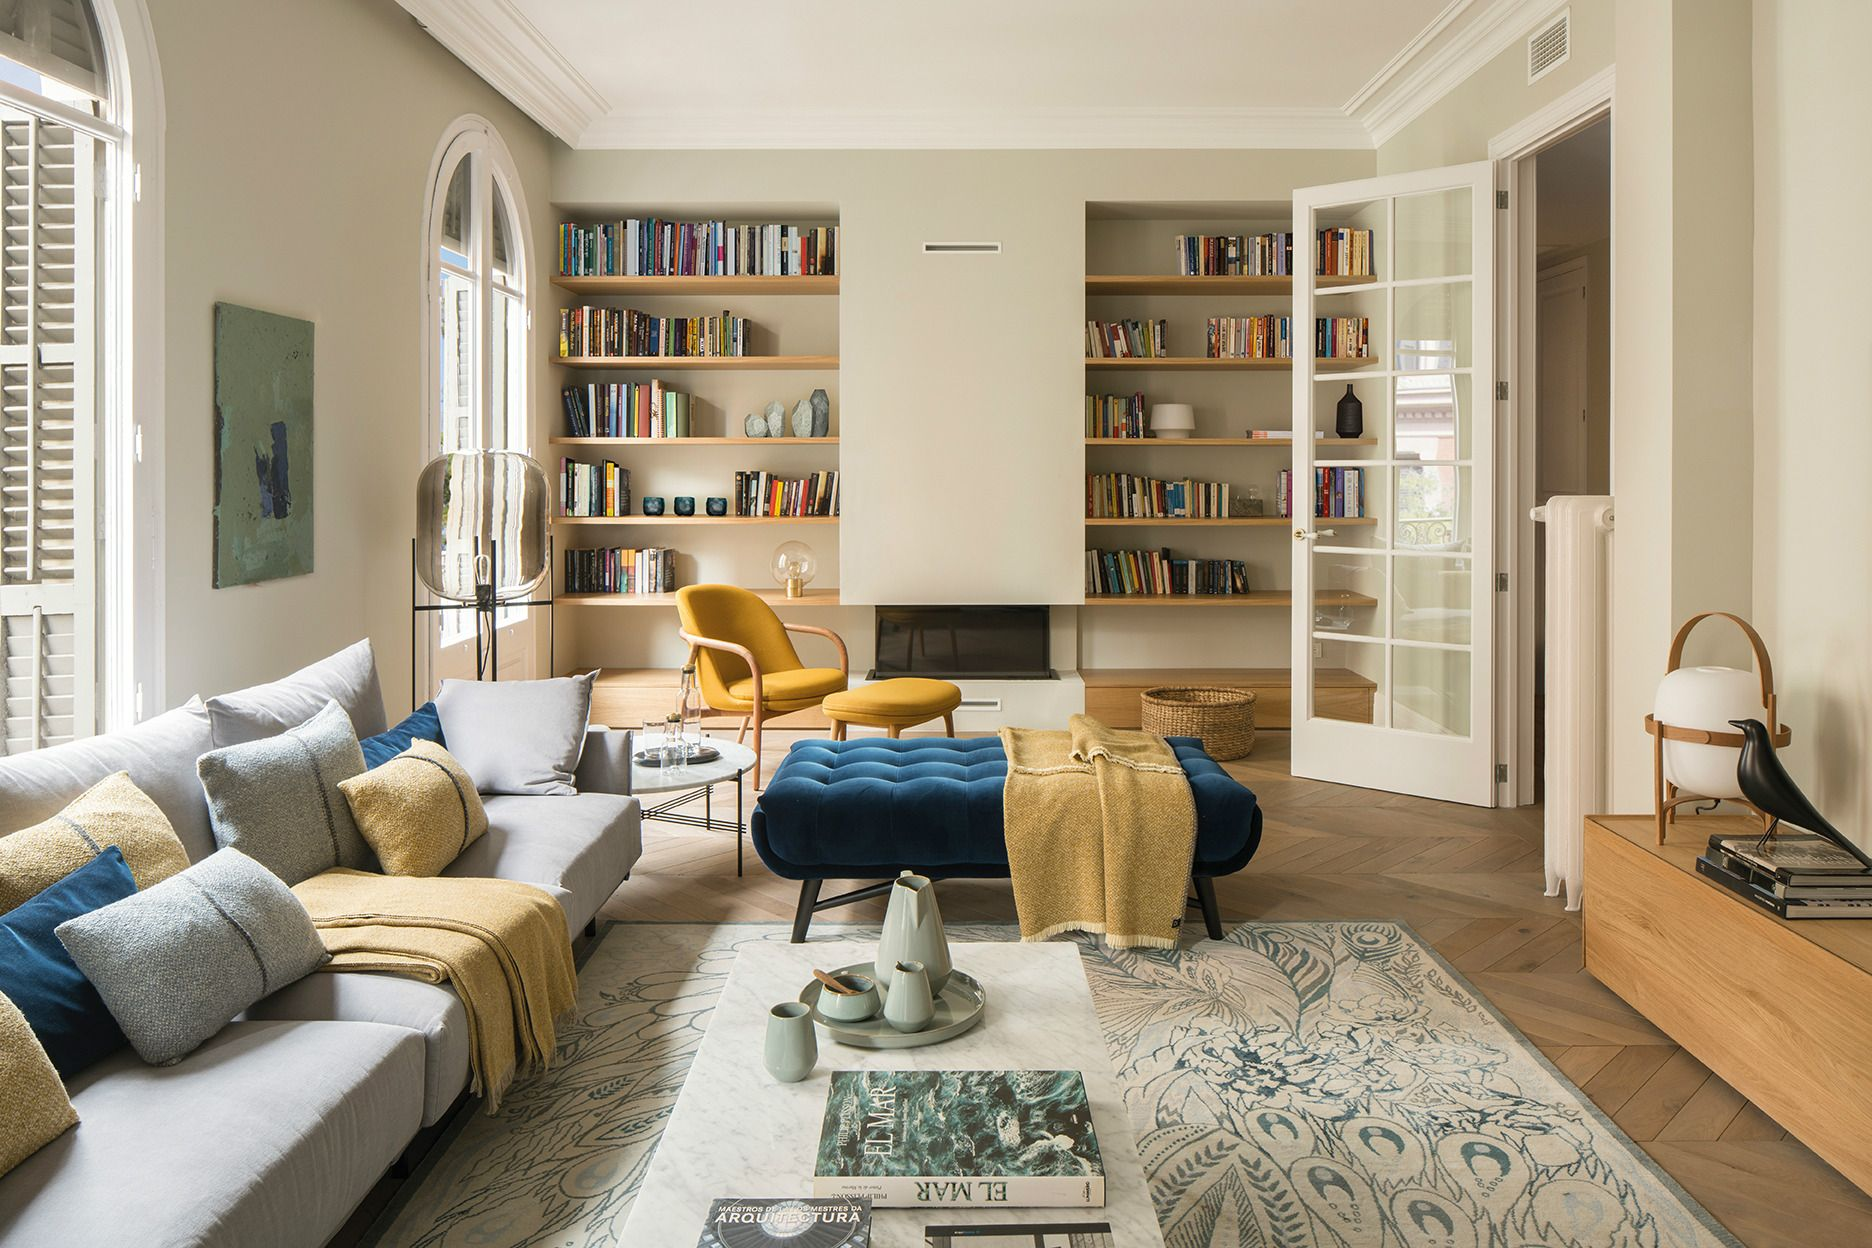 Home Tour: A Mid-Century Apartment With A Mediterranean Soul